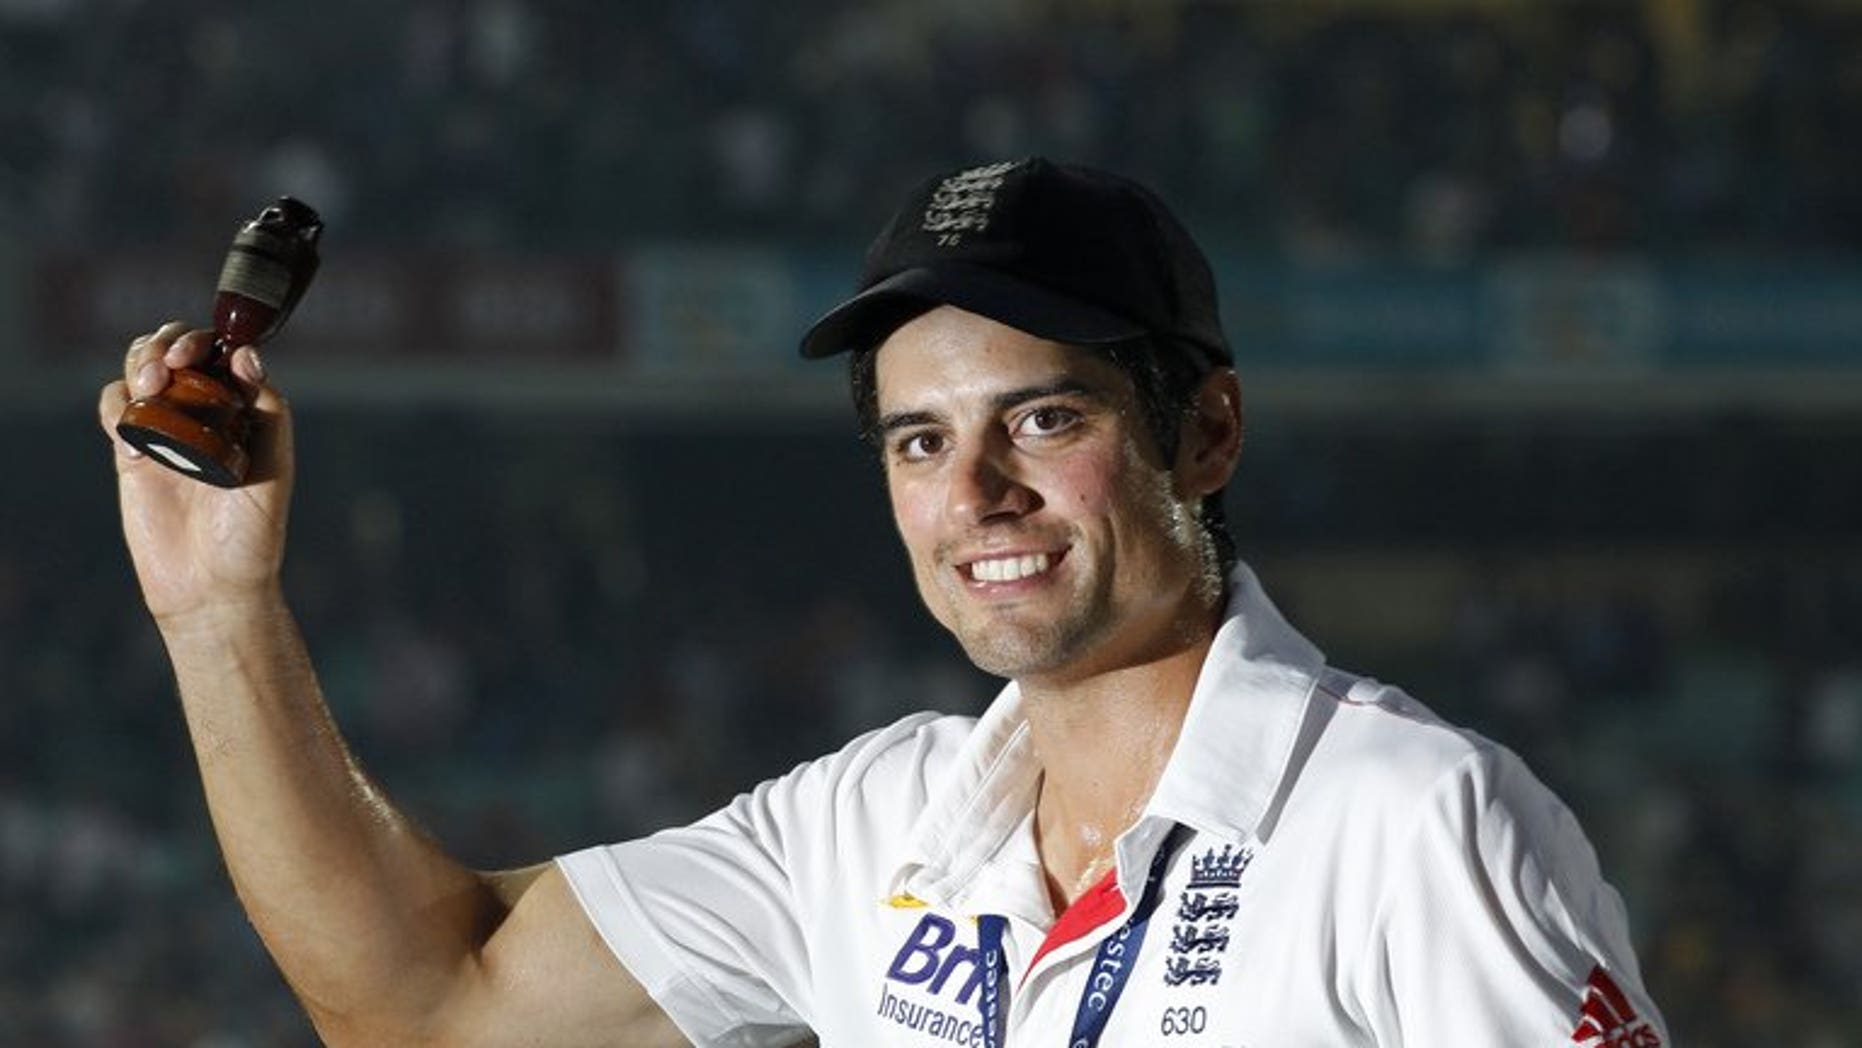 England captain Alastair Cook celebrates with a replica of the Ashes urn after the fifth Test against Australia at The Oval in London, on August 25, 2013. Yorkshire batsman Gary Ballance admits he was taken aback by his inclusion in England's squad for the forthcoming Ashes tour of Australia but insisted he was prepared for the challenge ahead.